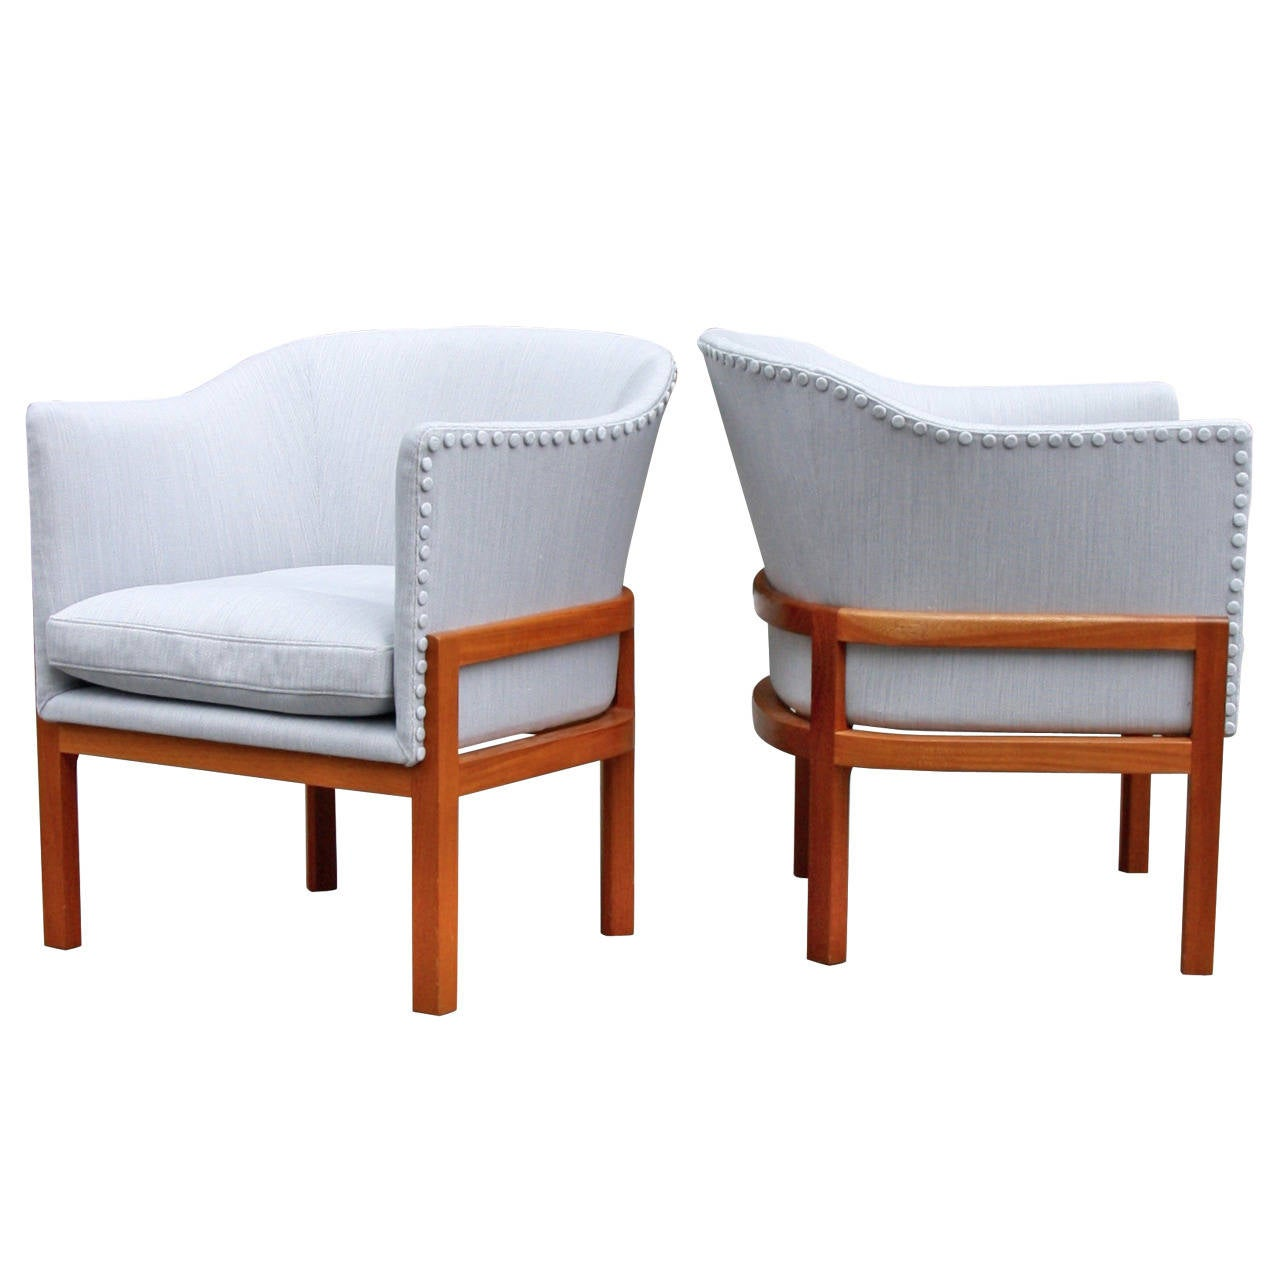 rare mogens koch pair of mk51 easy chairs for sale at 1stdibs